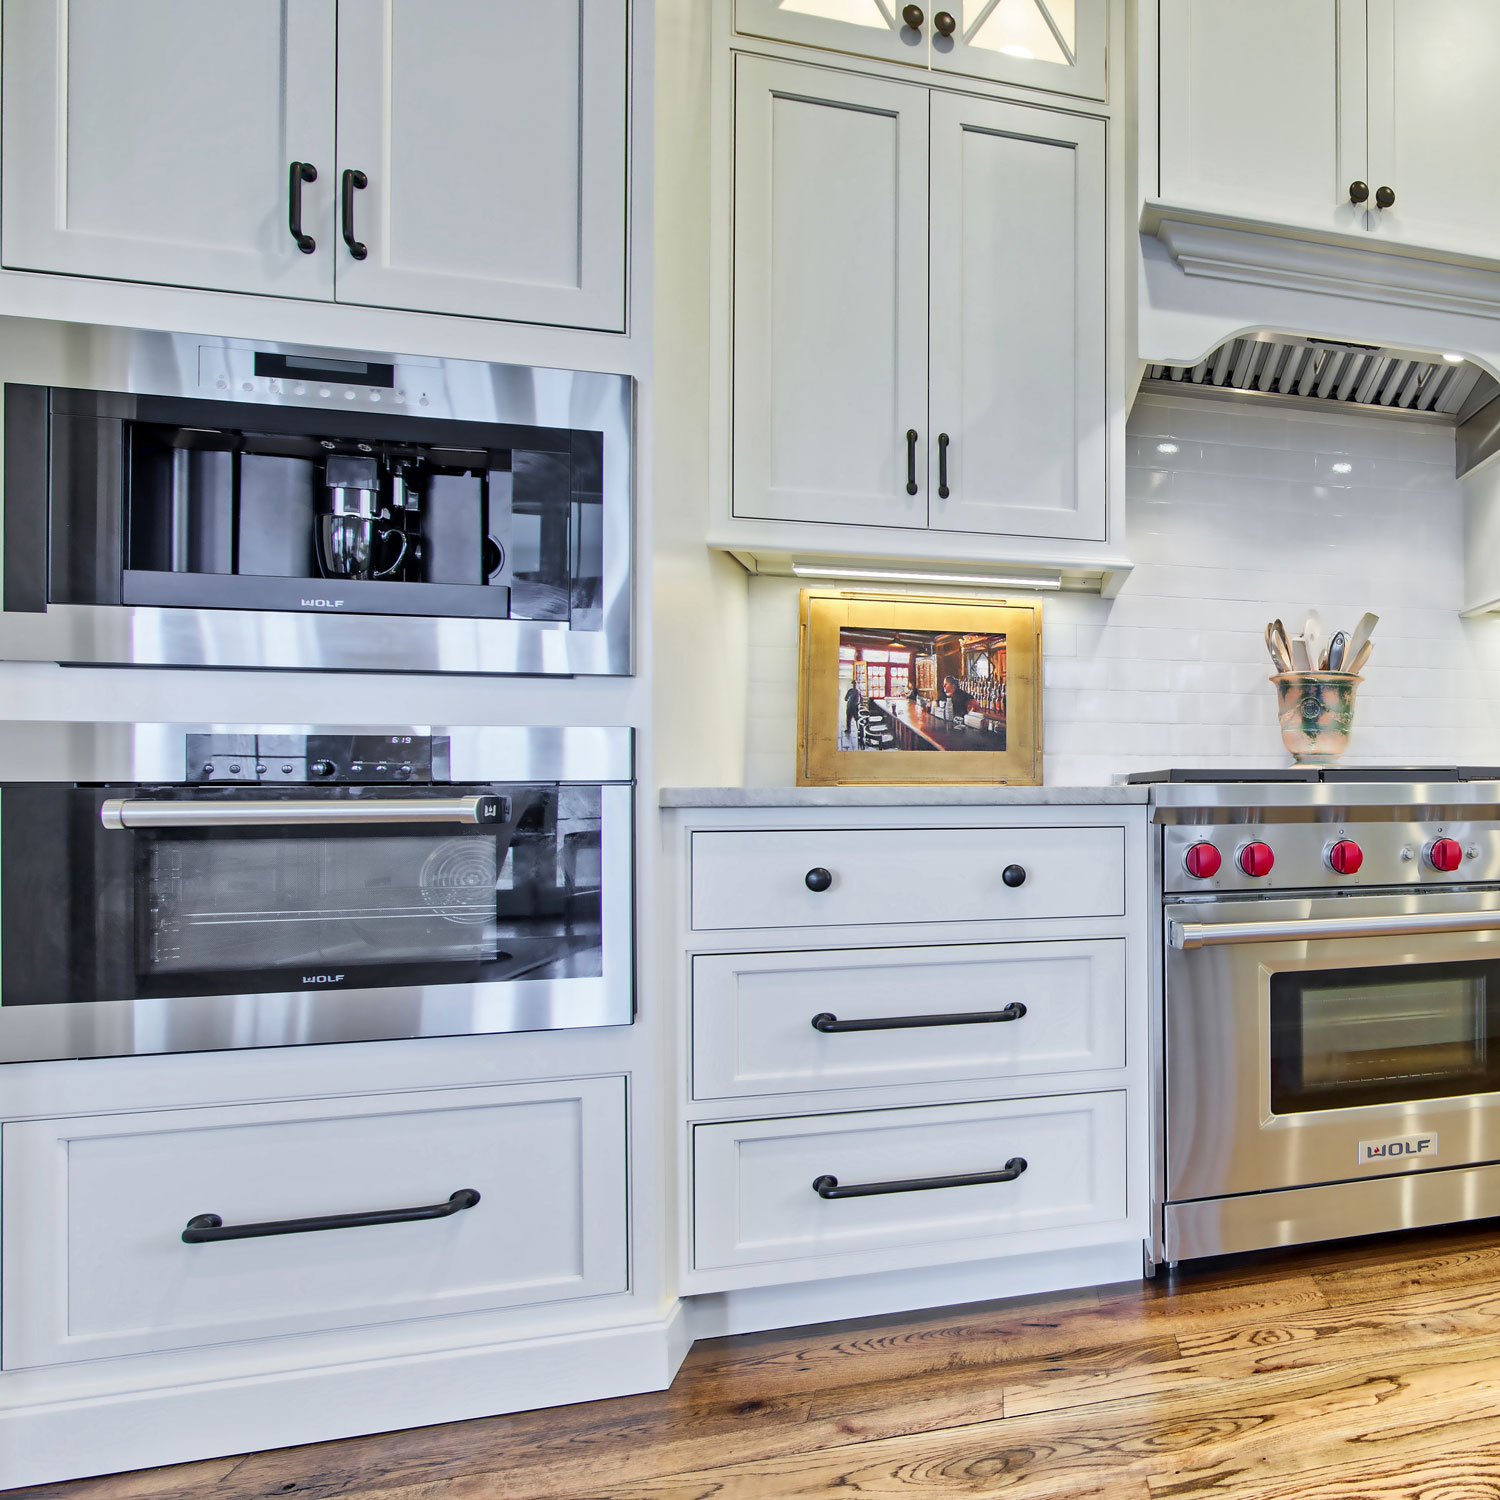 Steam ovens - the new kitchen technology for the kitchen